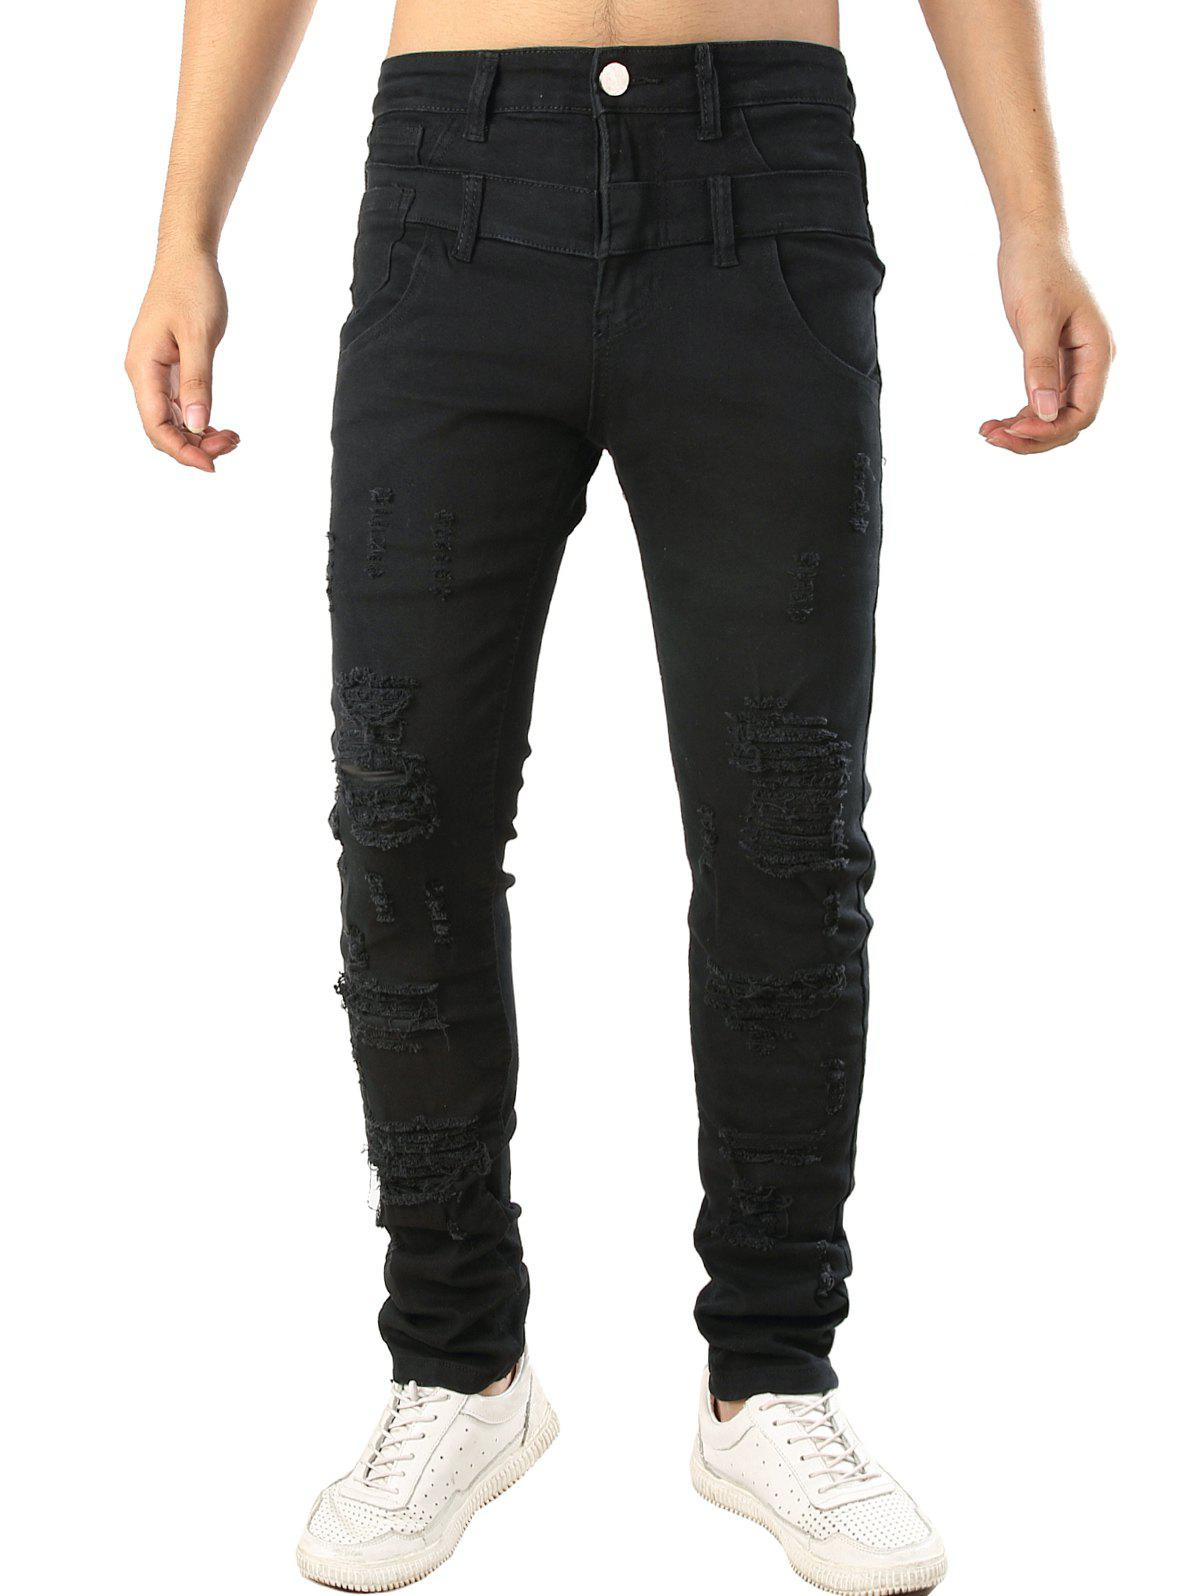 Hot Zip Fly Design Casual Ripped Jeans